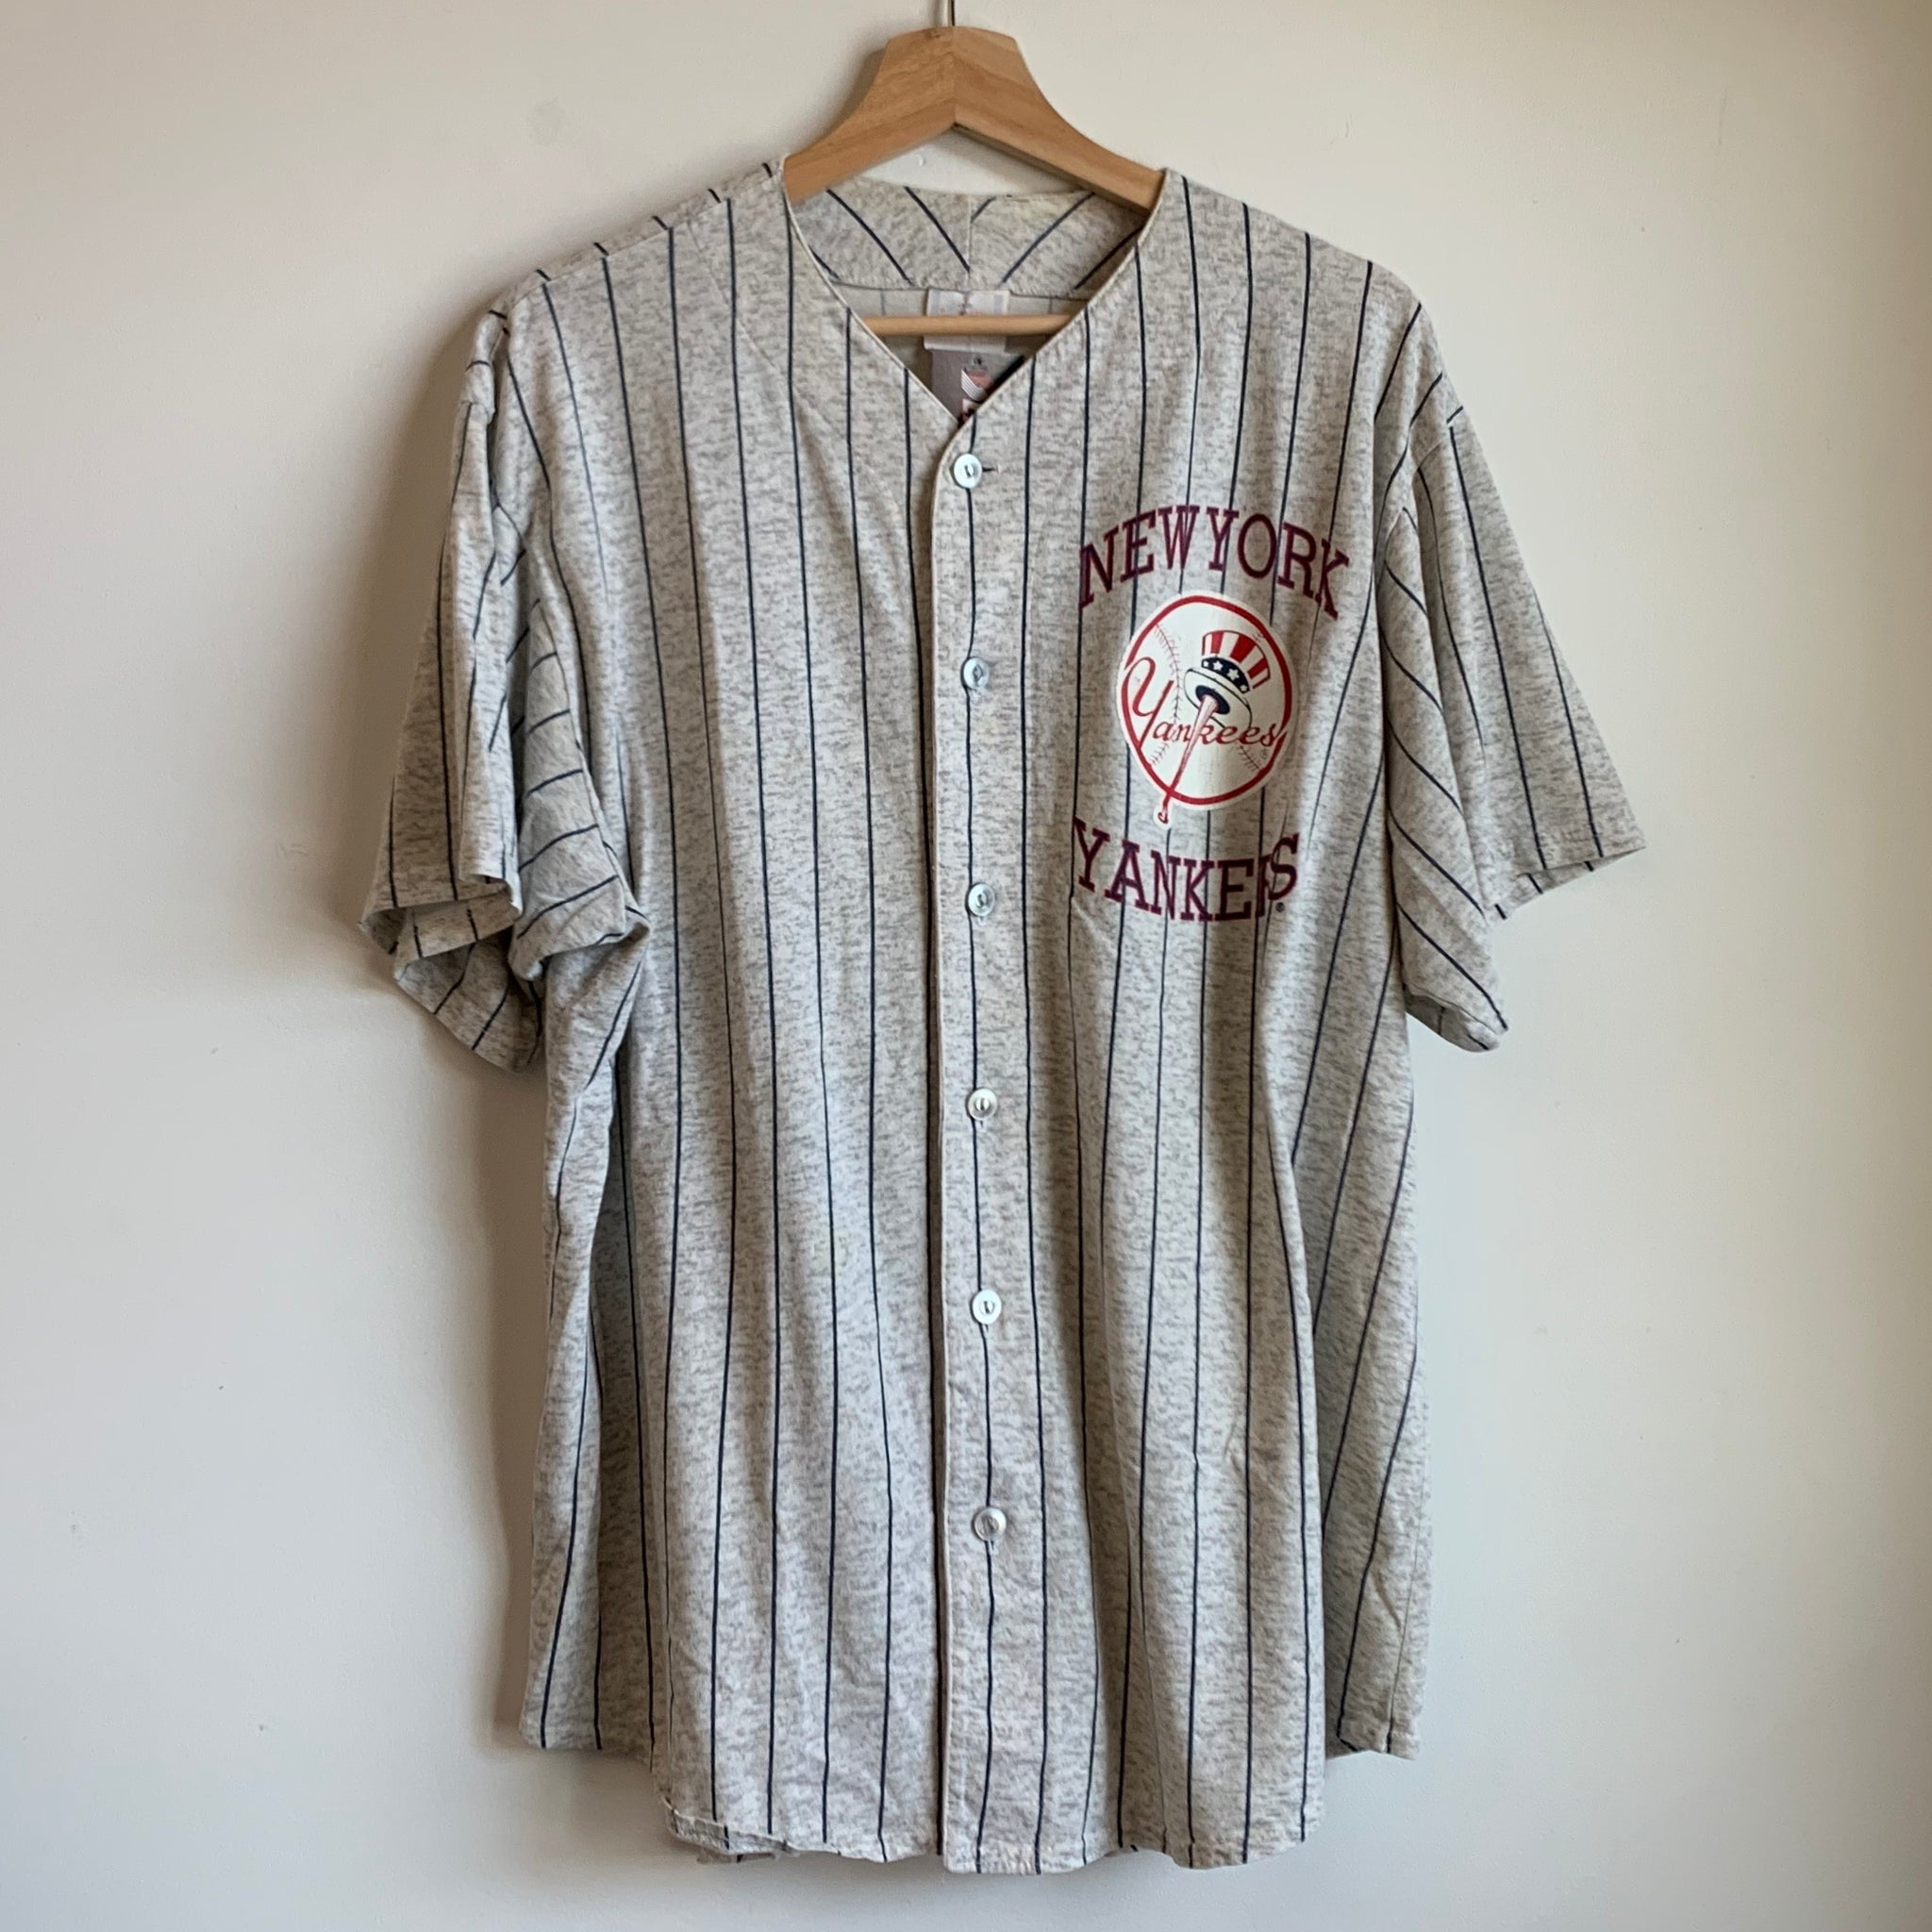 Off The Bench New York Yankees Baseball Jersey